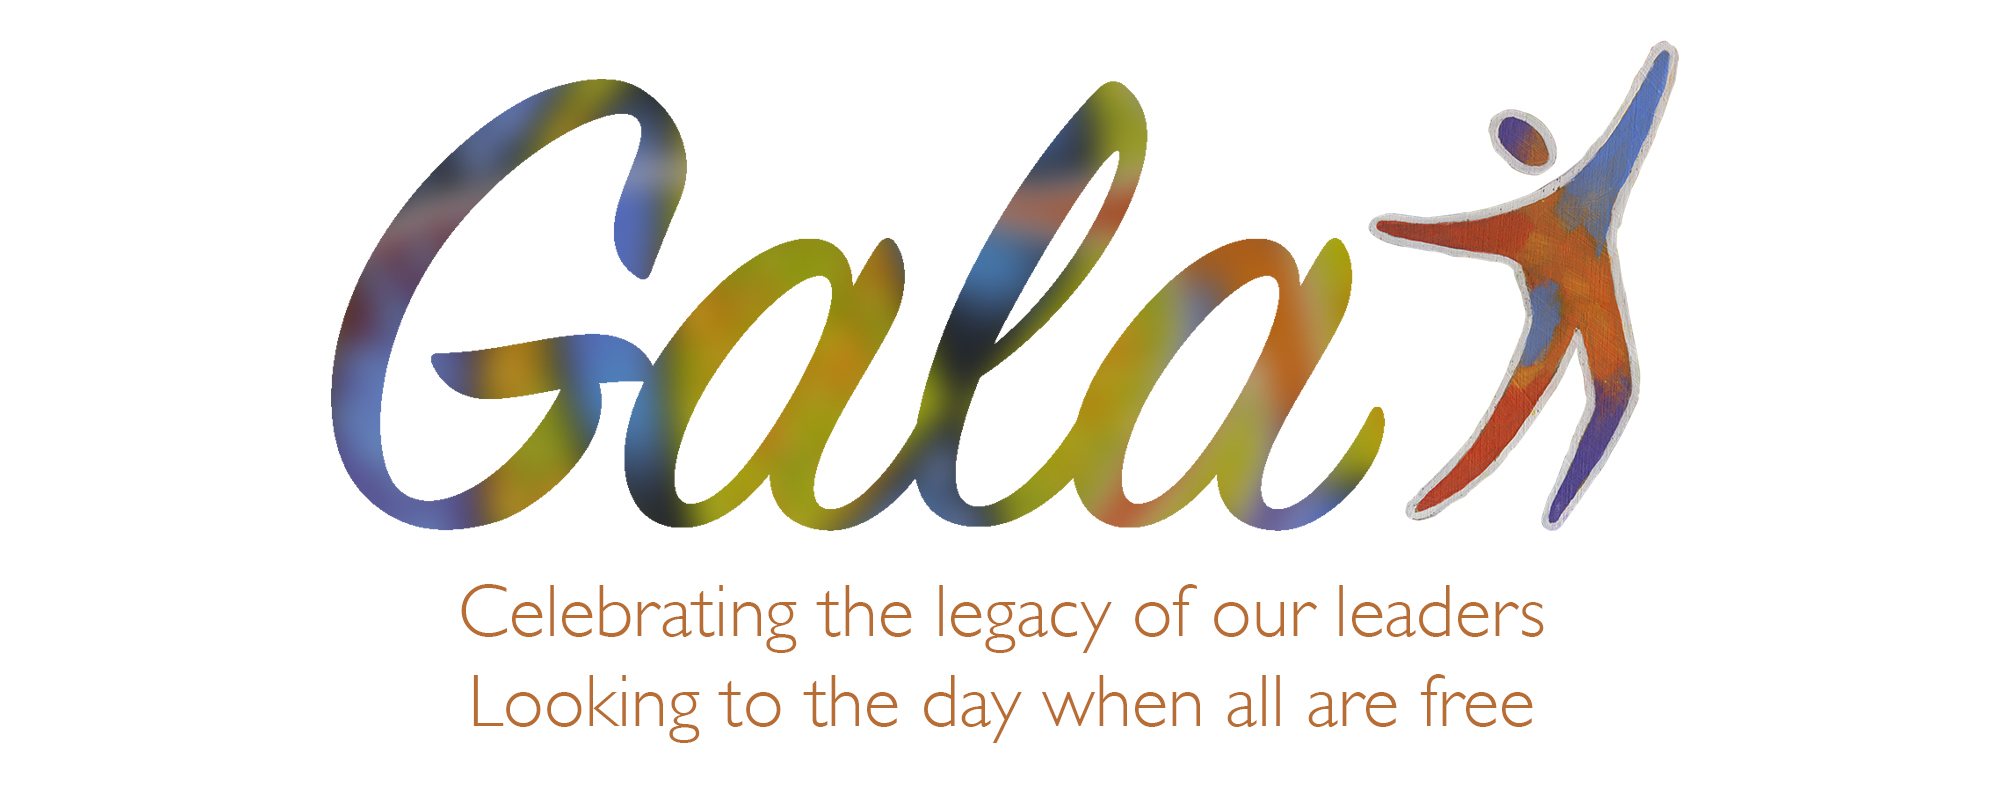 Gala | Celebrating the legacy of our leaders. Looking the day when all are free.